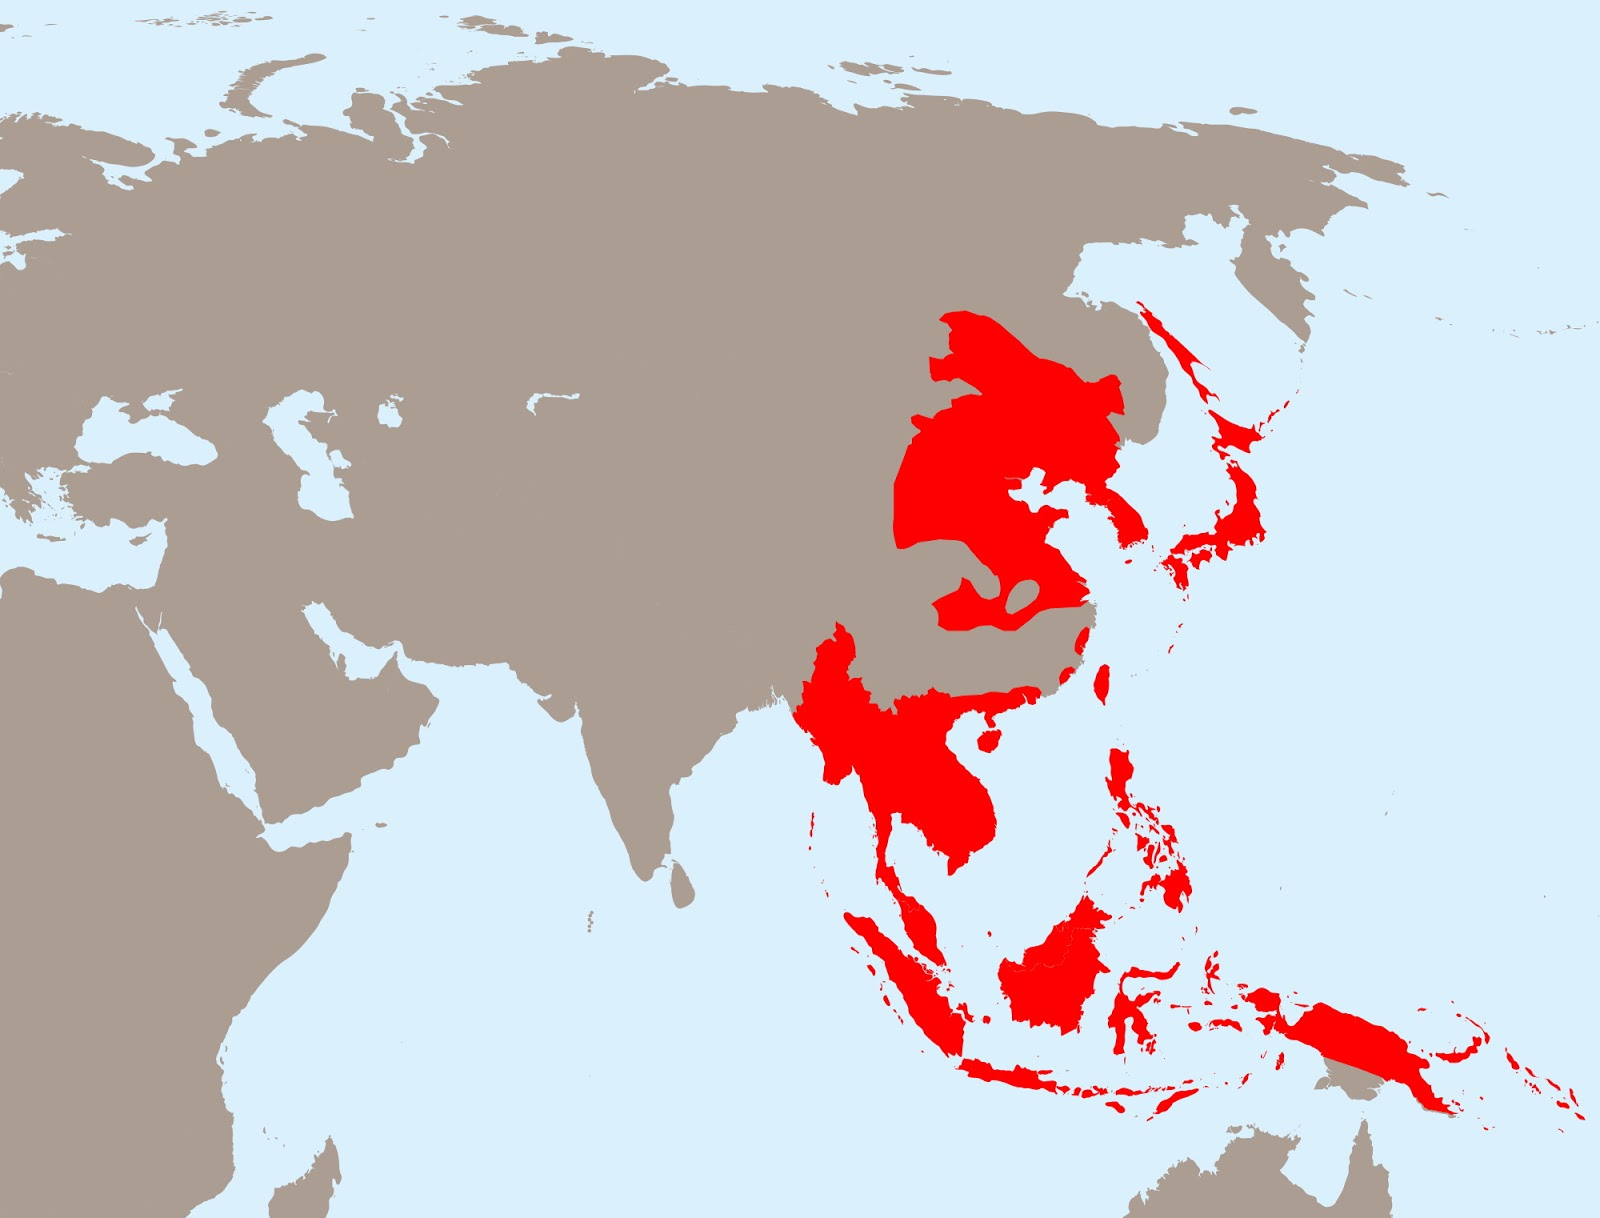 Empire of Japan at its greatest extent, 1942